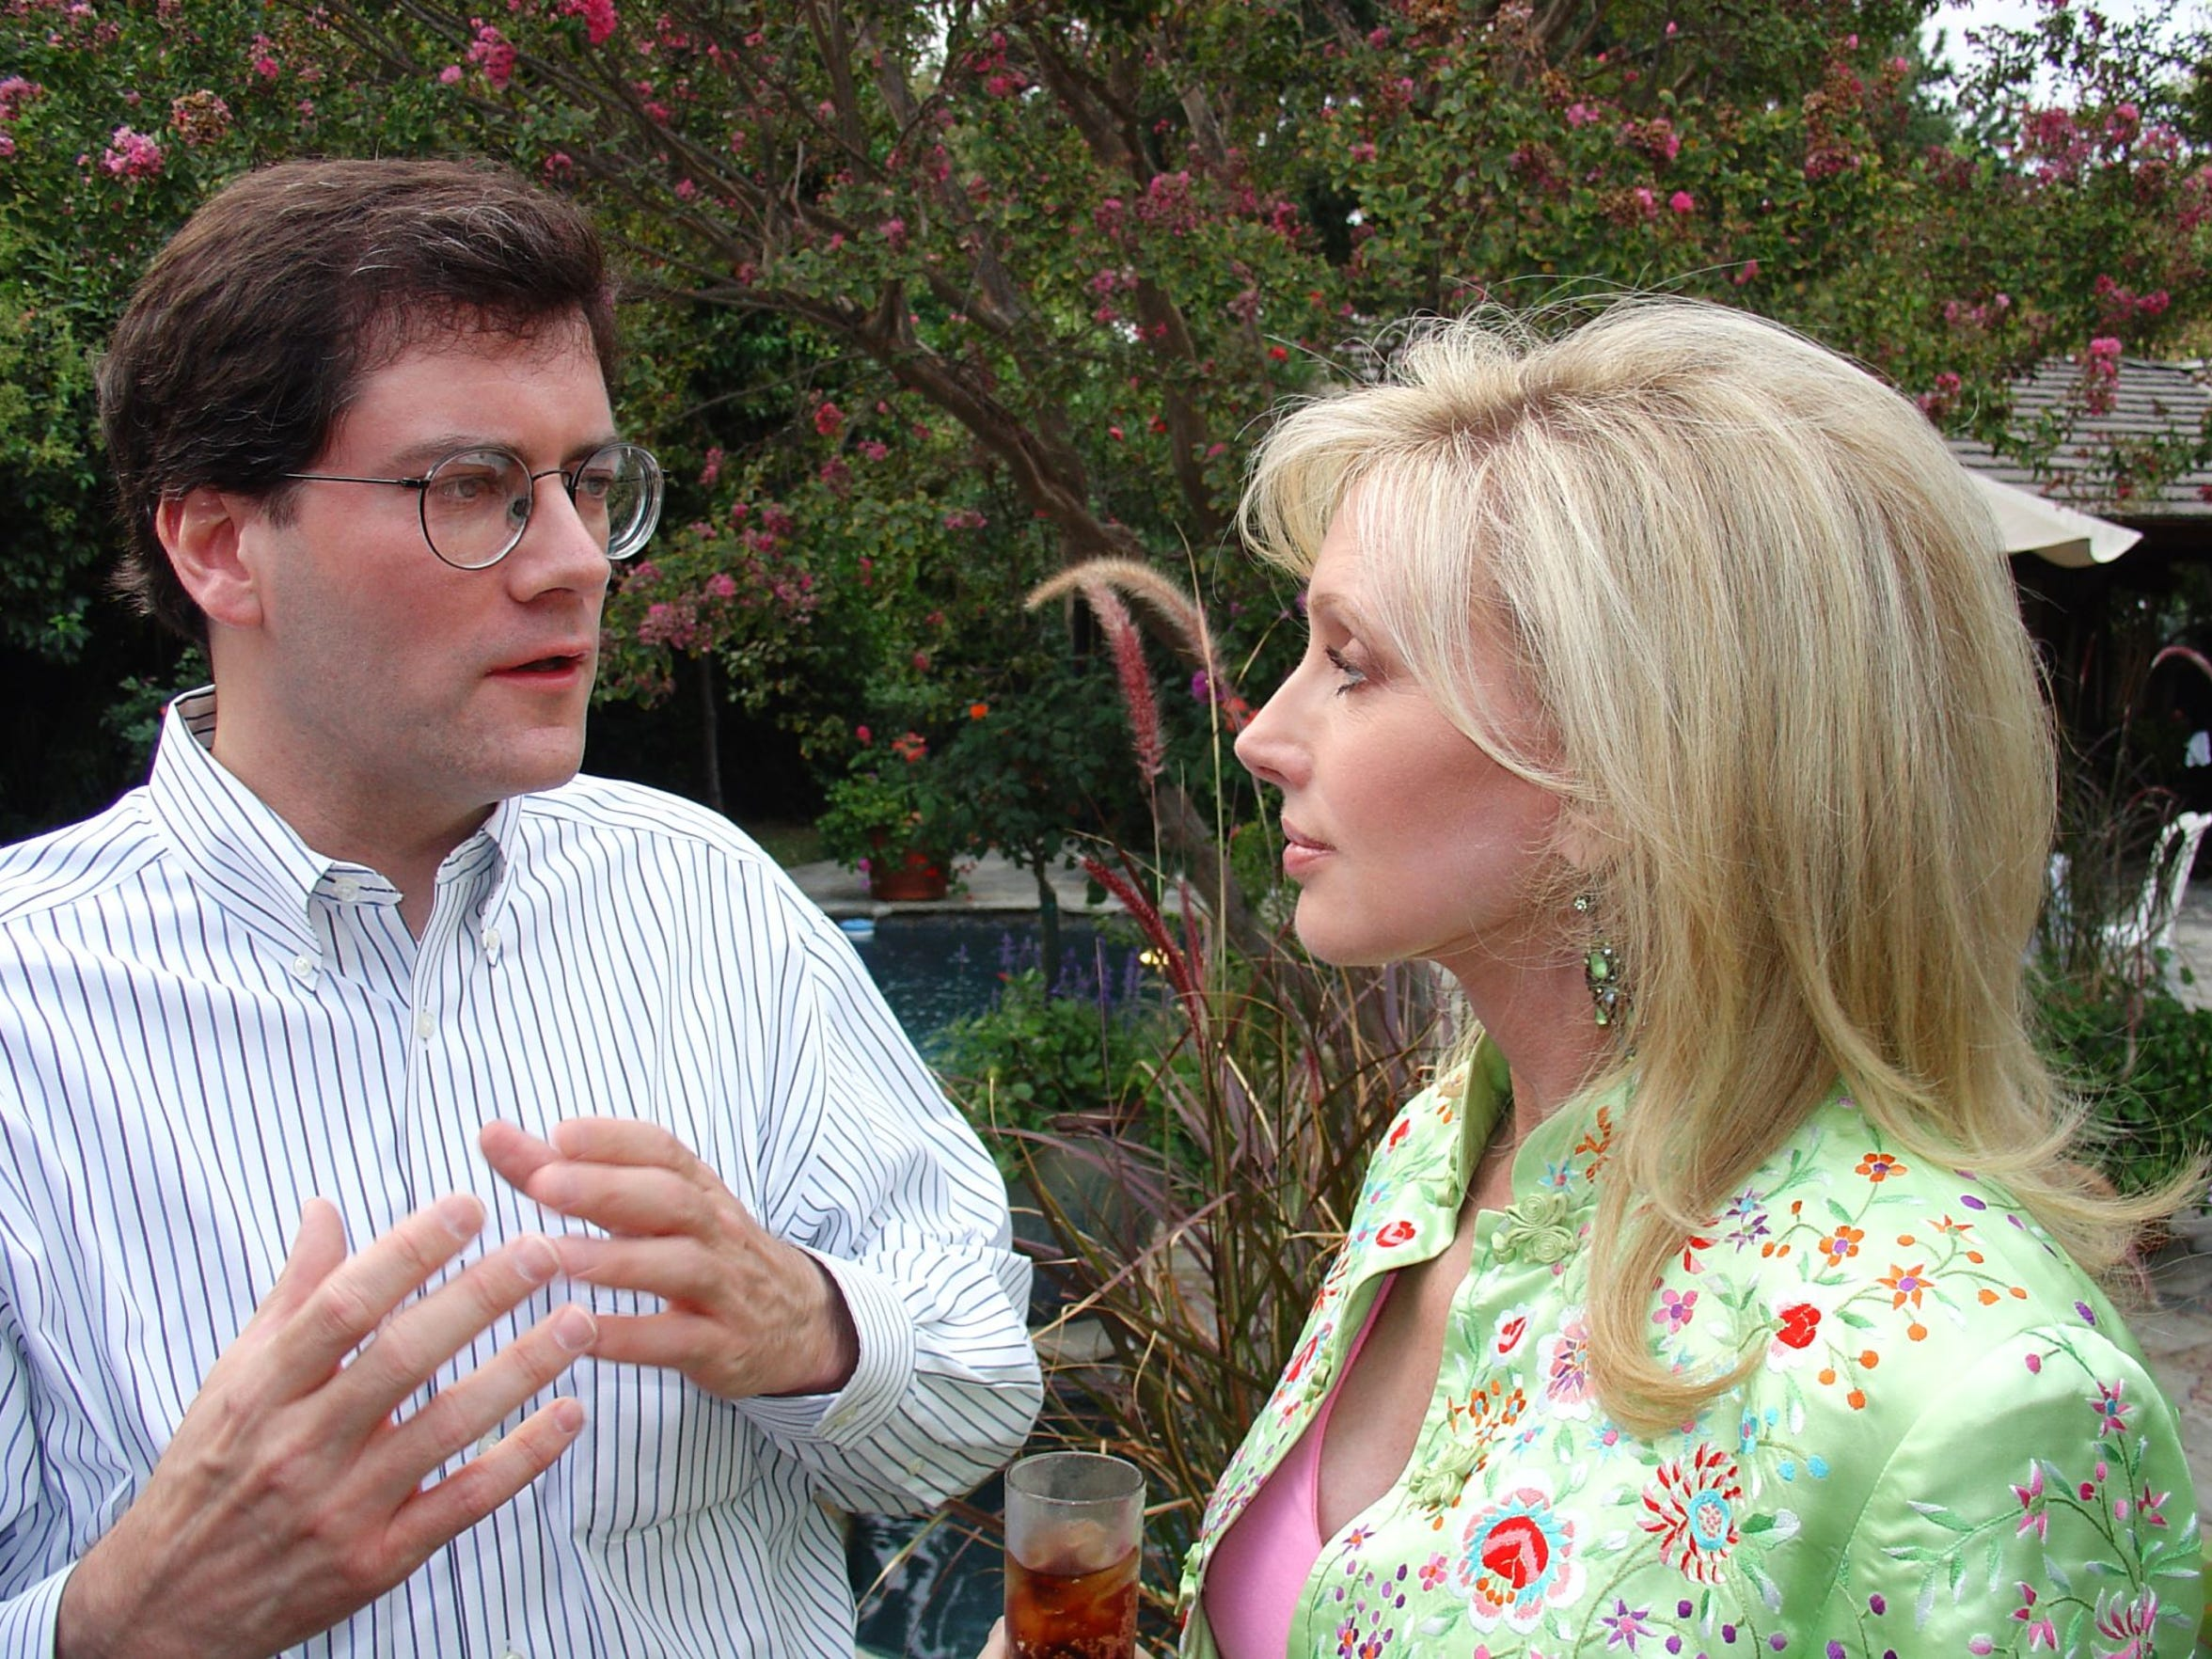 In 2005, Jim Reed worked on the campaign of actress